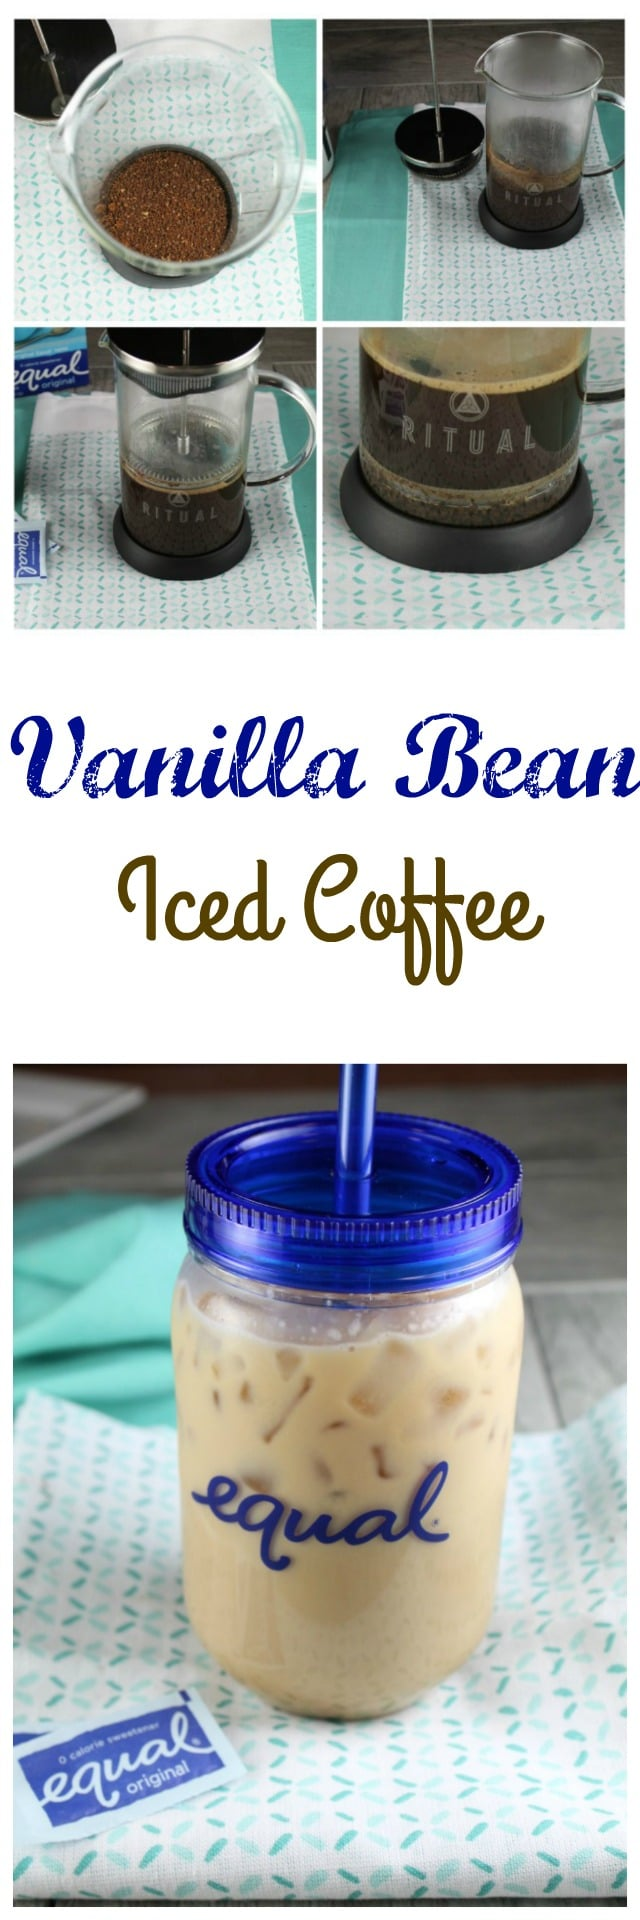 Vanilla Bean Iced Coffee Recipe from missinthekitchen.com #sponsored